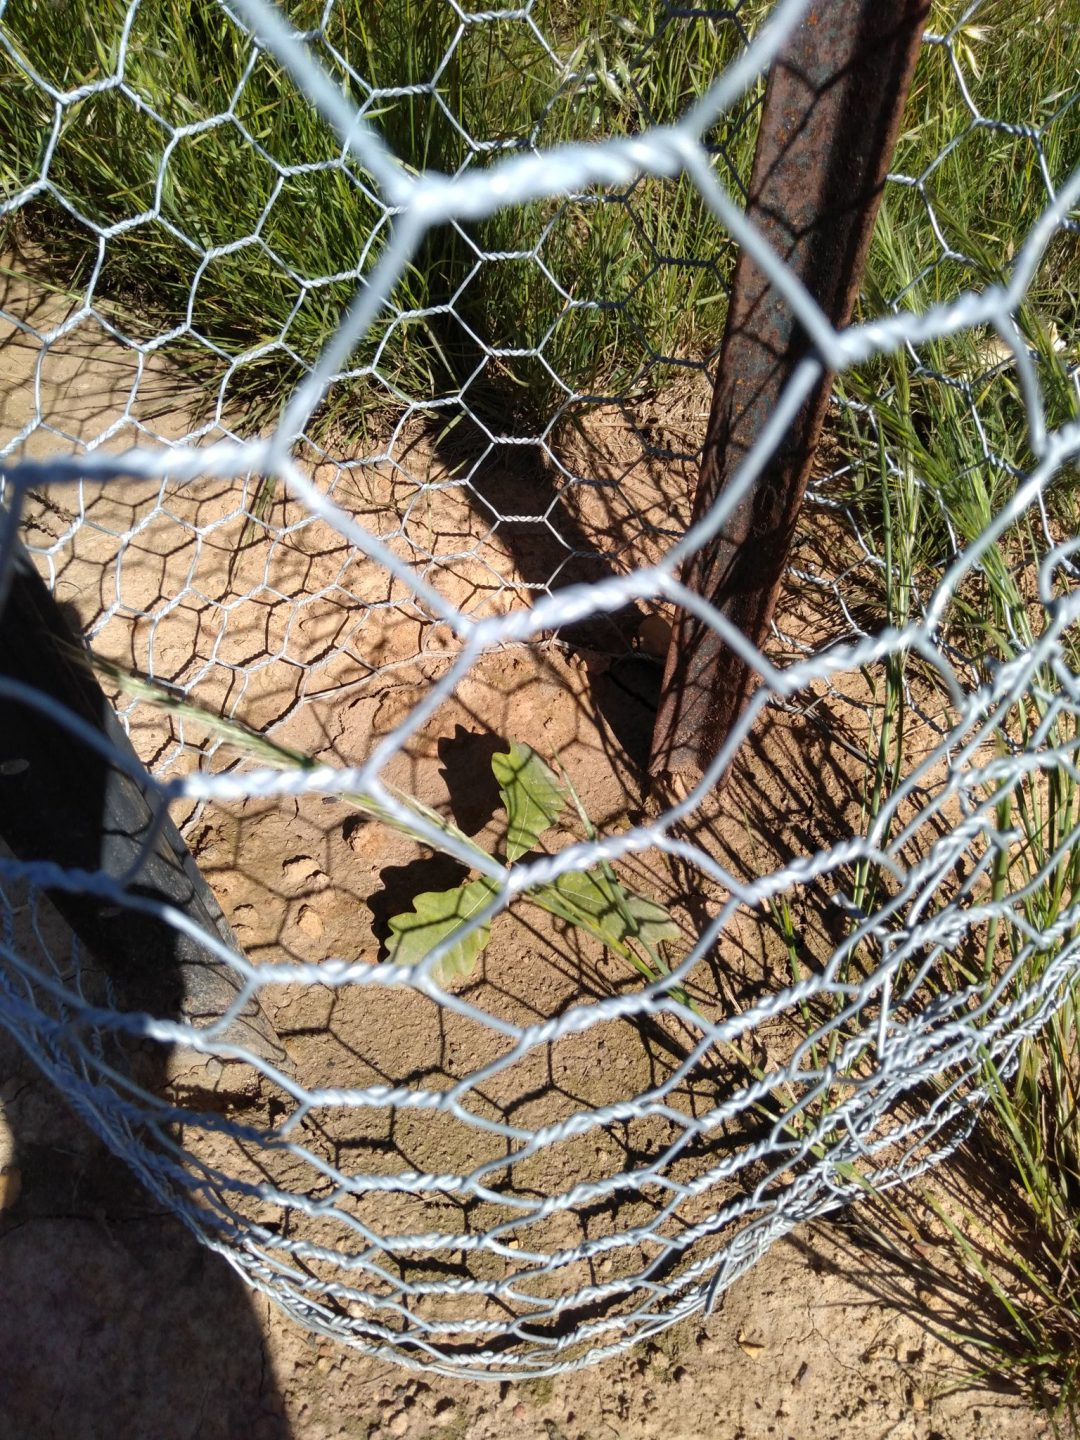 A small oak tree, protected by fencing